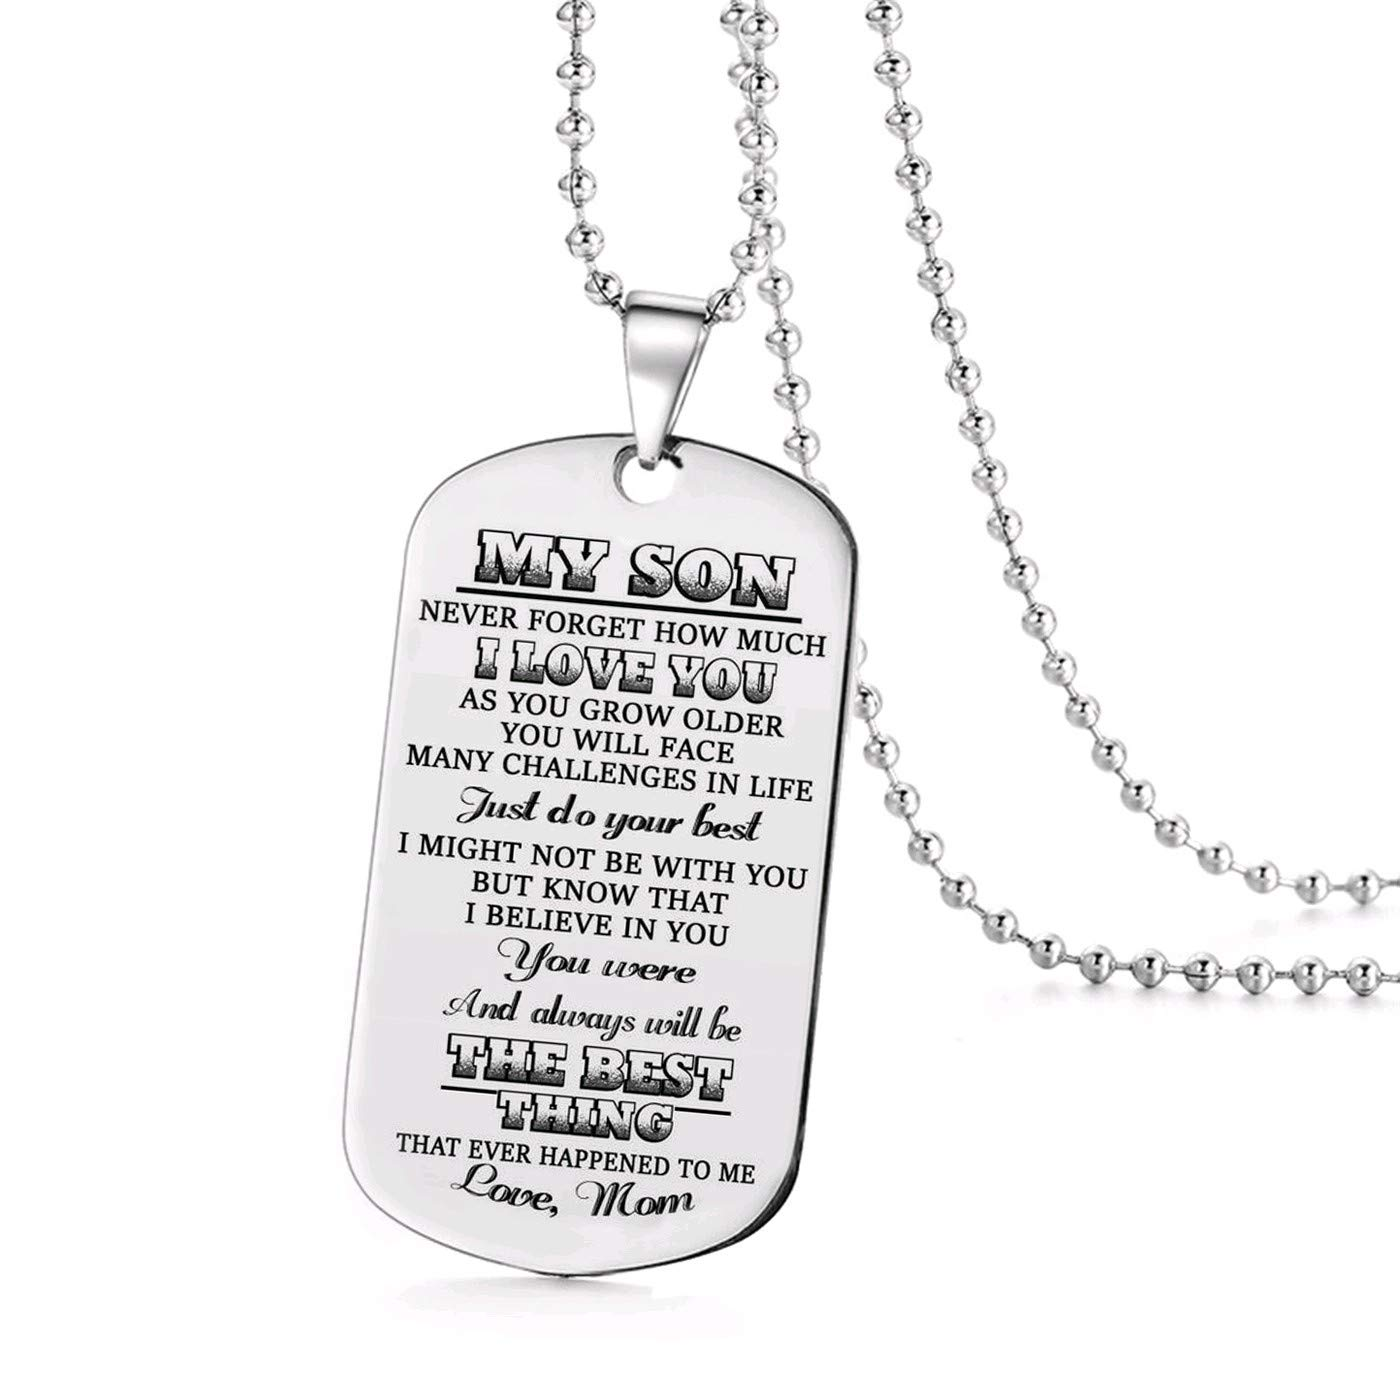 Jvvsci Dad Mom to Son Dog Tag I Want You to Believe Deep in Your Heart Inspirational Message Pendant Necklace Birthday Jewelry Gift for Boys Teen mom to Son